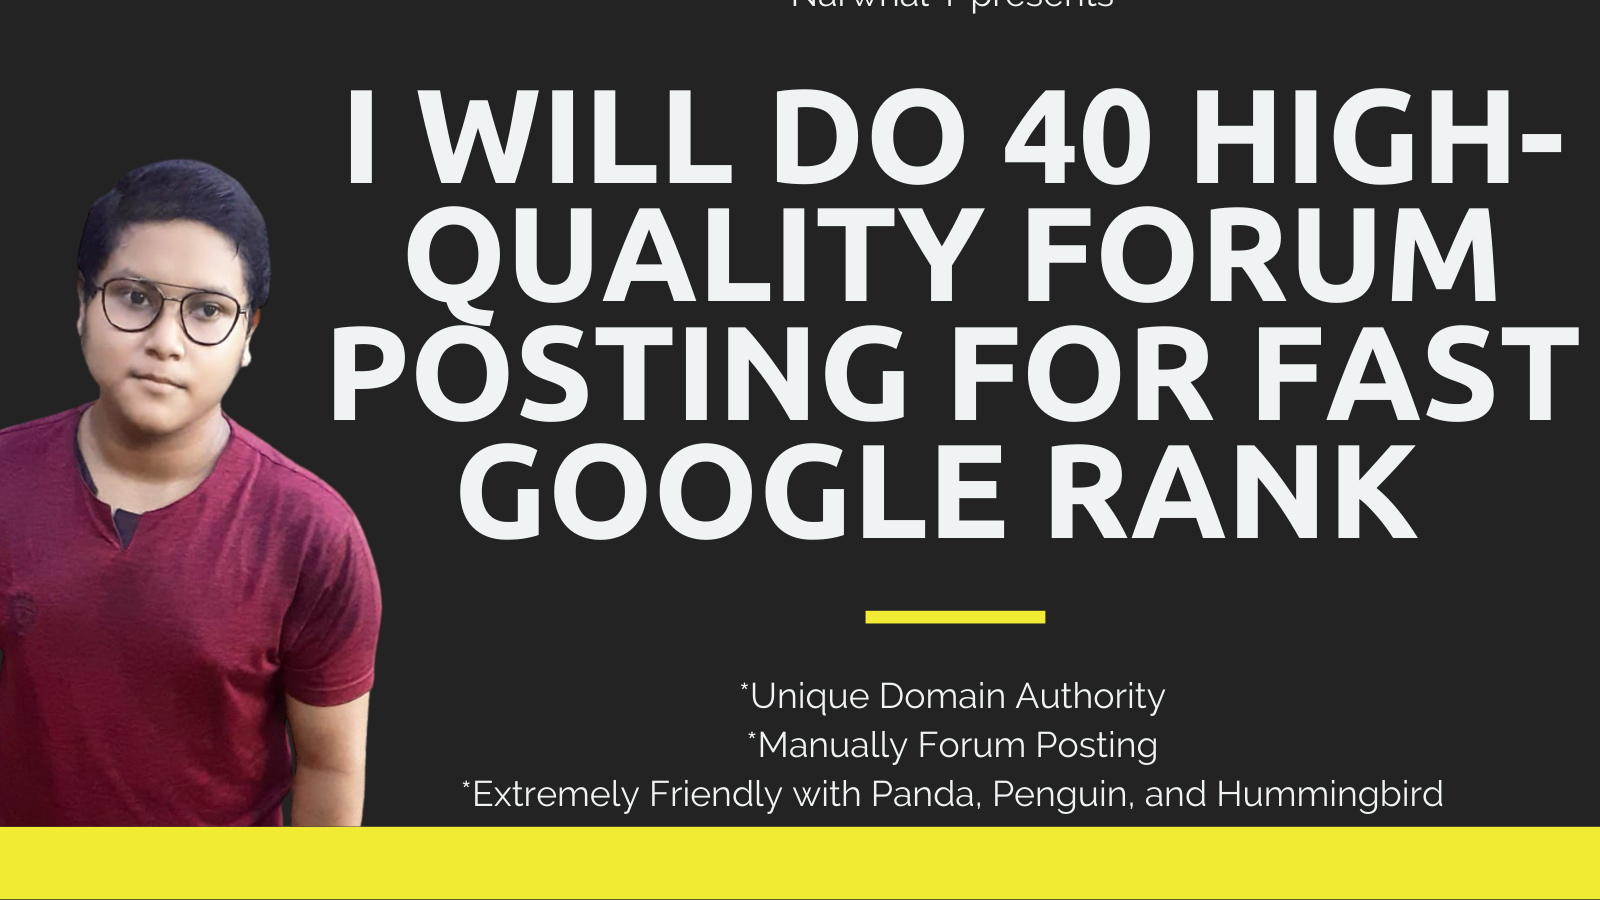 I Will Do 40 High-Quality Forum Posting For Fast Google Rank